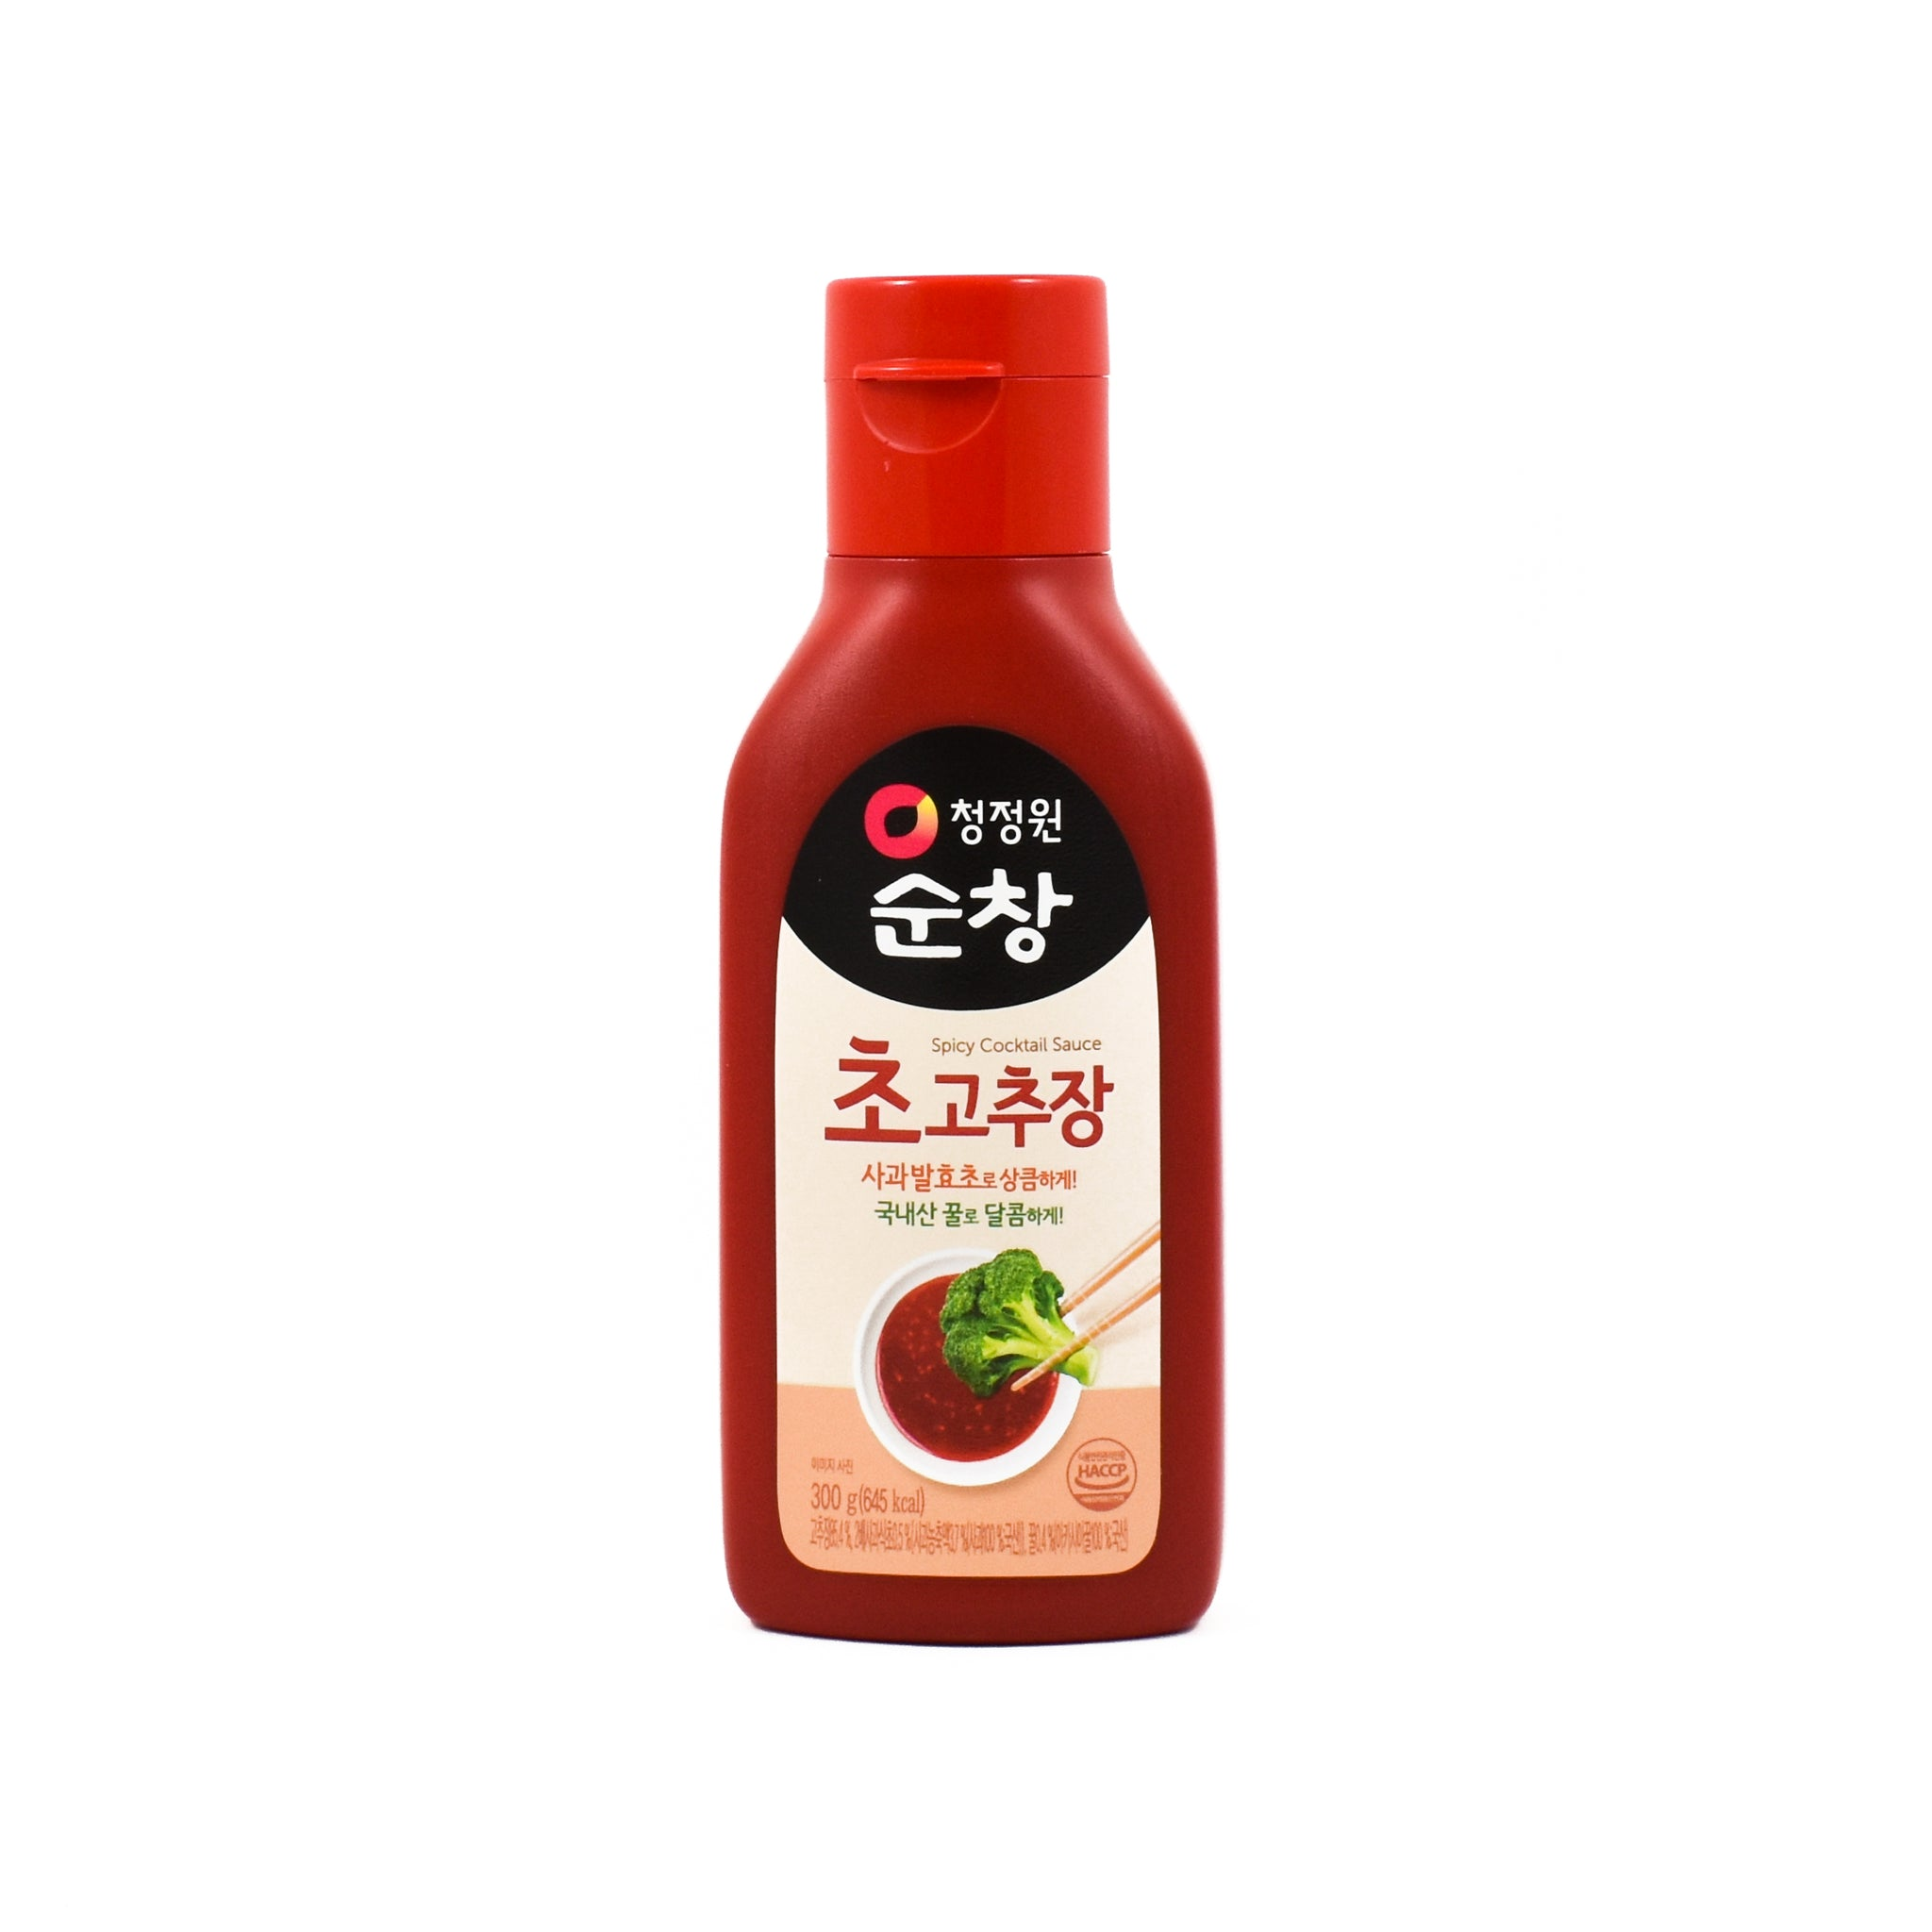 Vinegared Gochujang